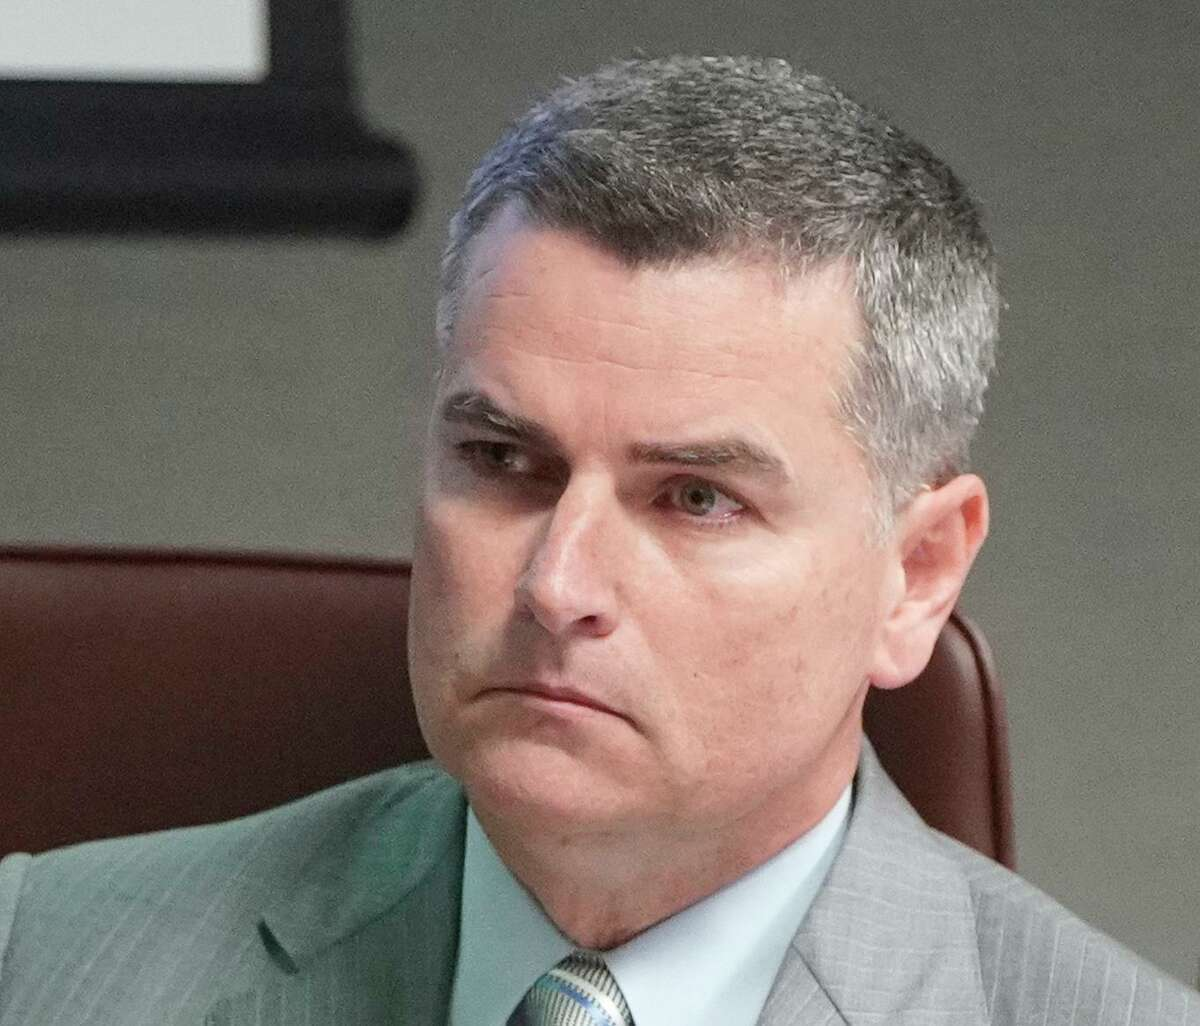 Former Harris County Department of Education board president Josh Flynn, shown here during a February 2019 meeting, sued to get on the Harris County Republican Party primary ballot for a state House seat. Following mediation, the party and Flynn announced he would be on the ballot, even thought county party Chairman Paul Simpson believes he remains ineligible.